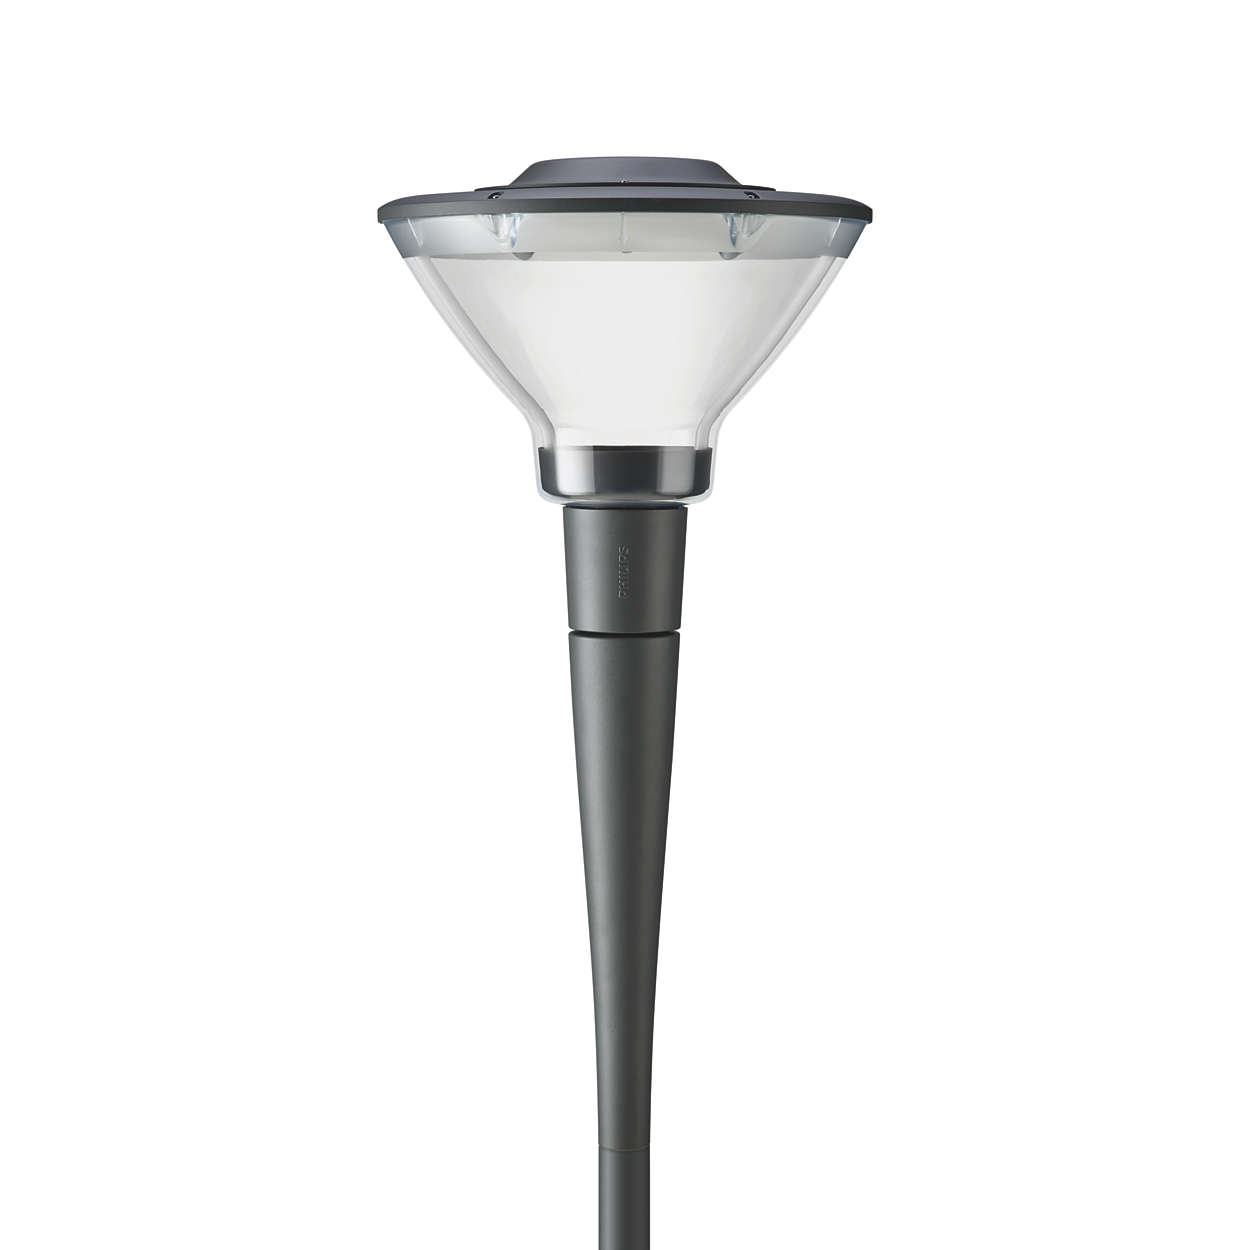 CityCharm Cone - combining ambiance and optimum performance